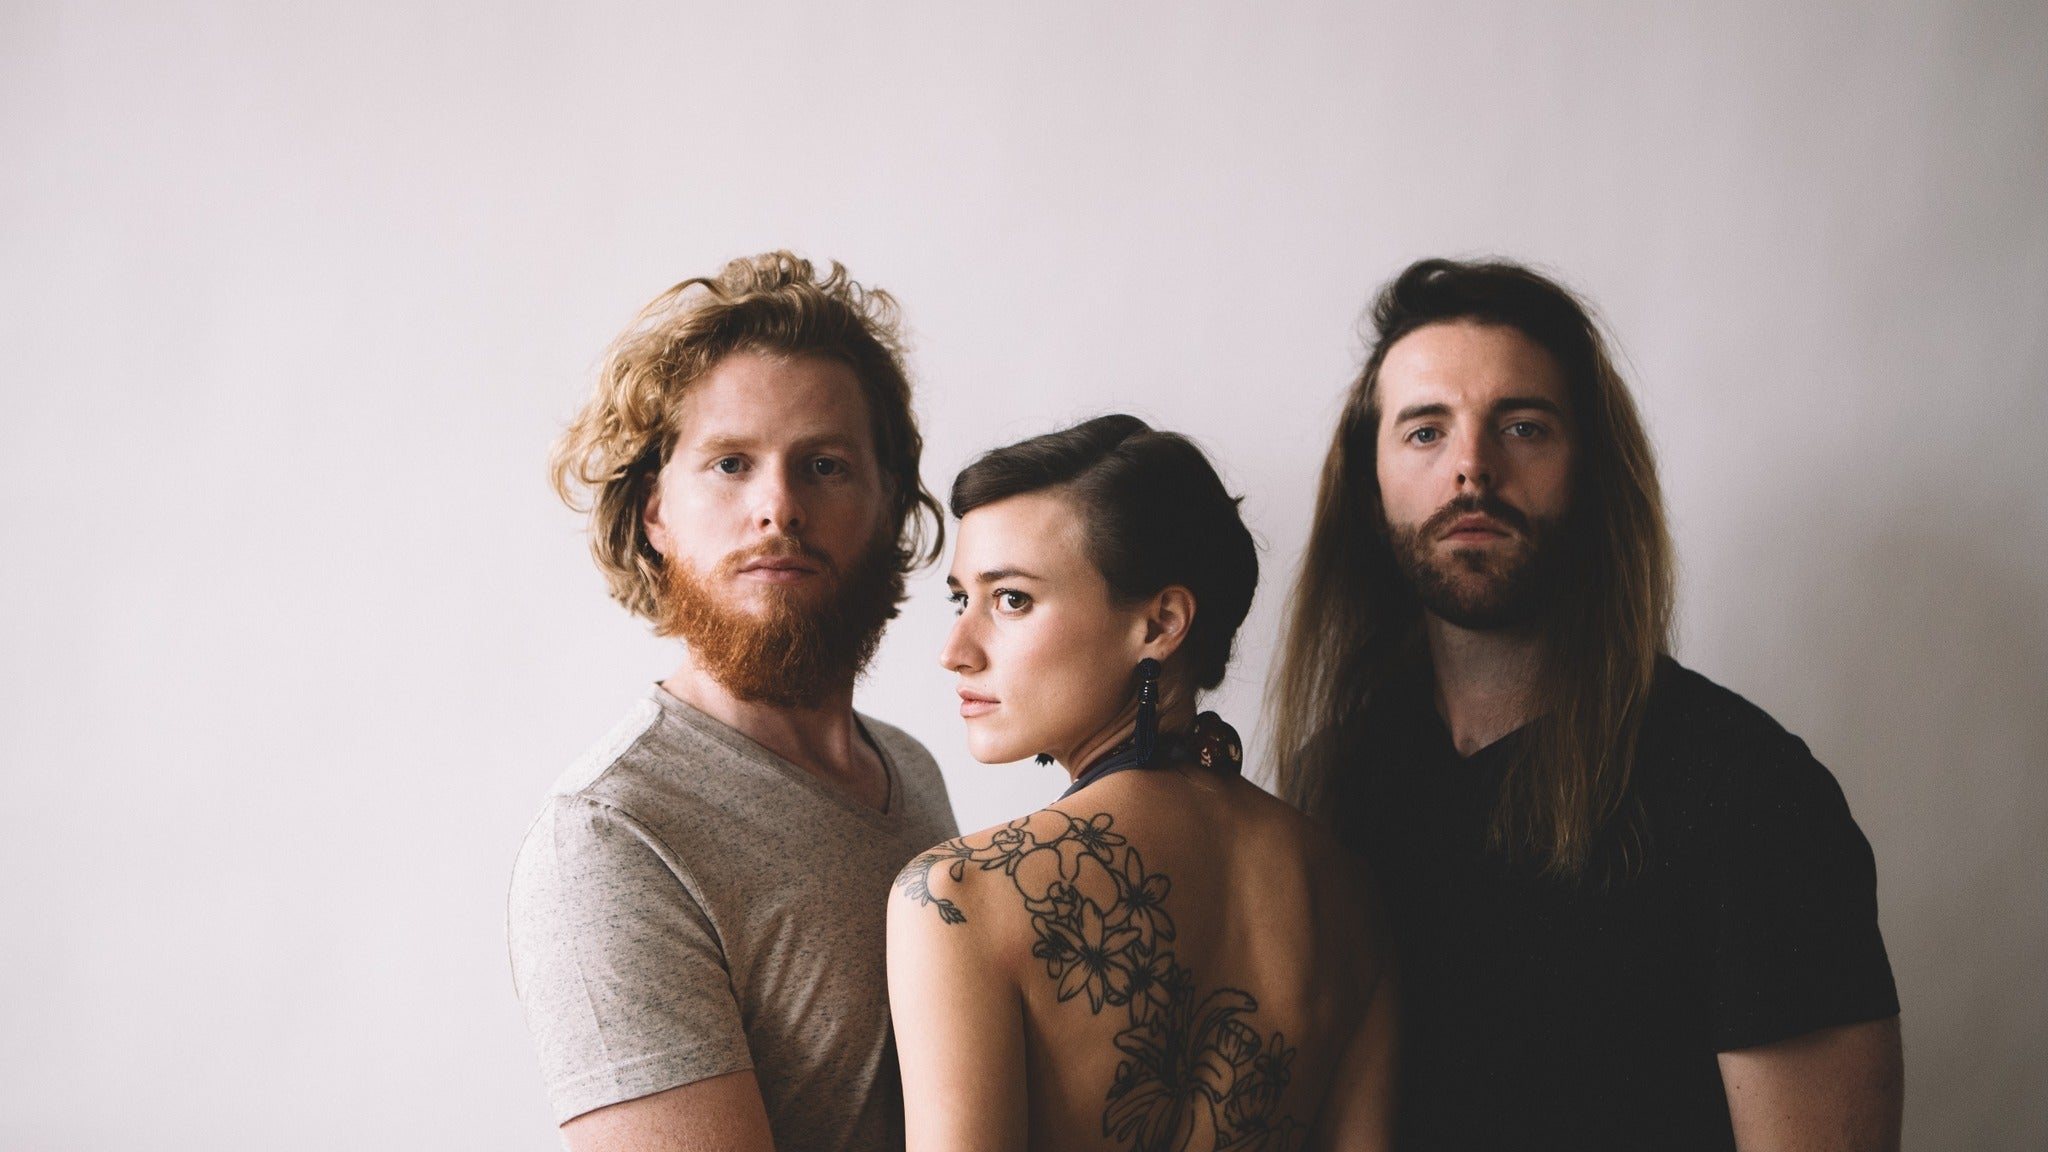 Ballroom Thieves at Port City Music Hall